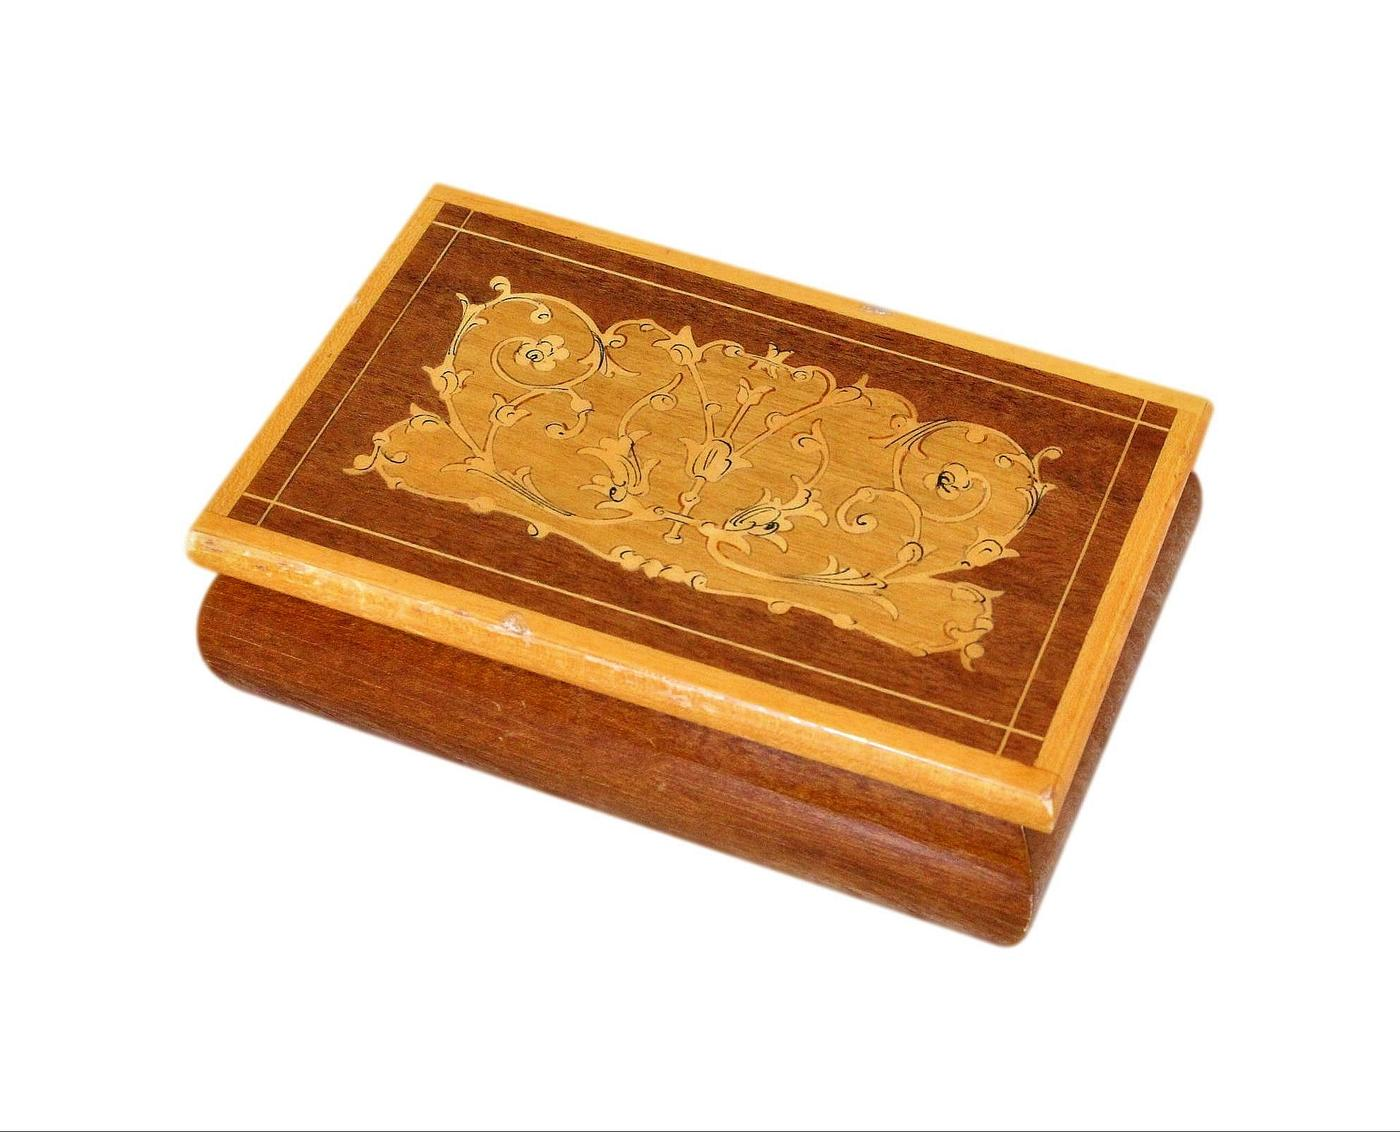 Lovely Italian Marquetry Inlaid Vintage Jewellery Box